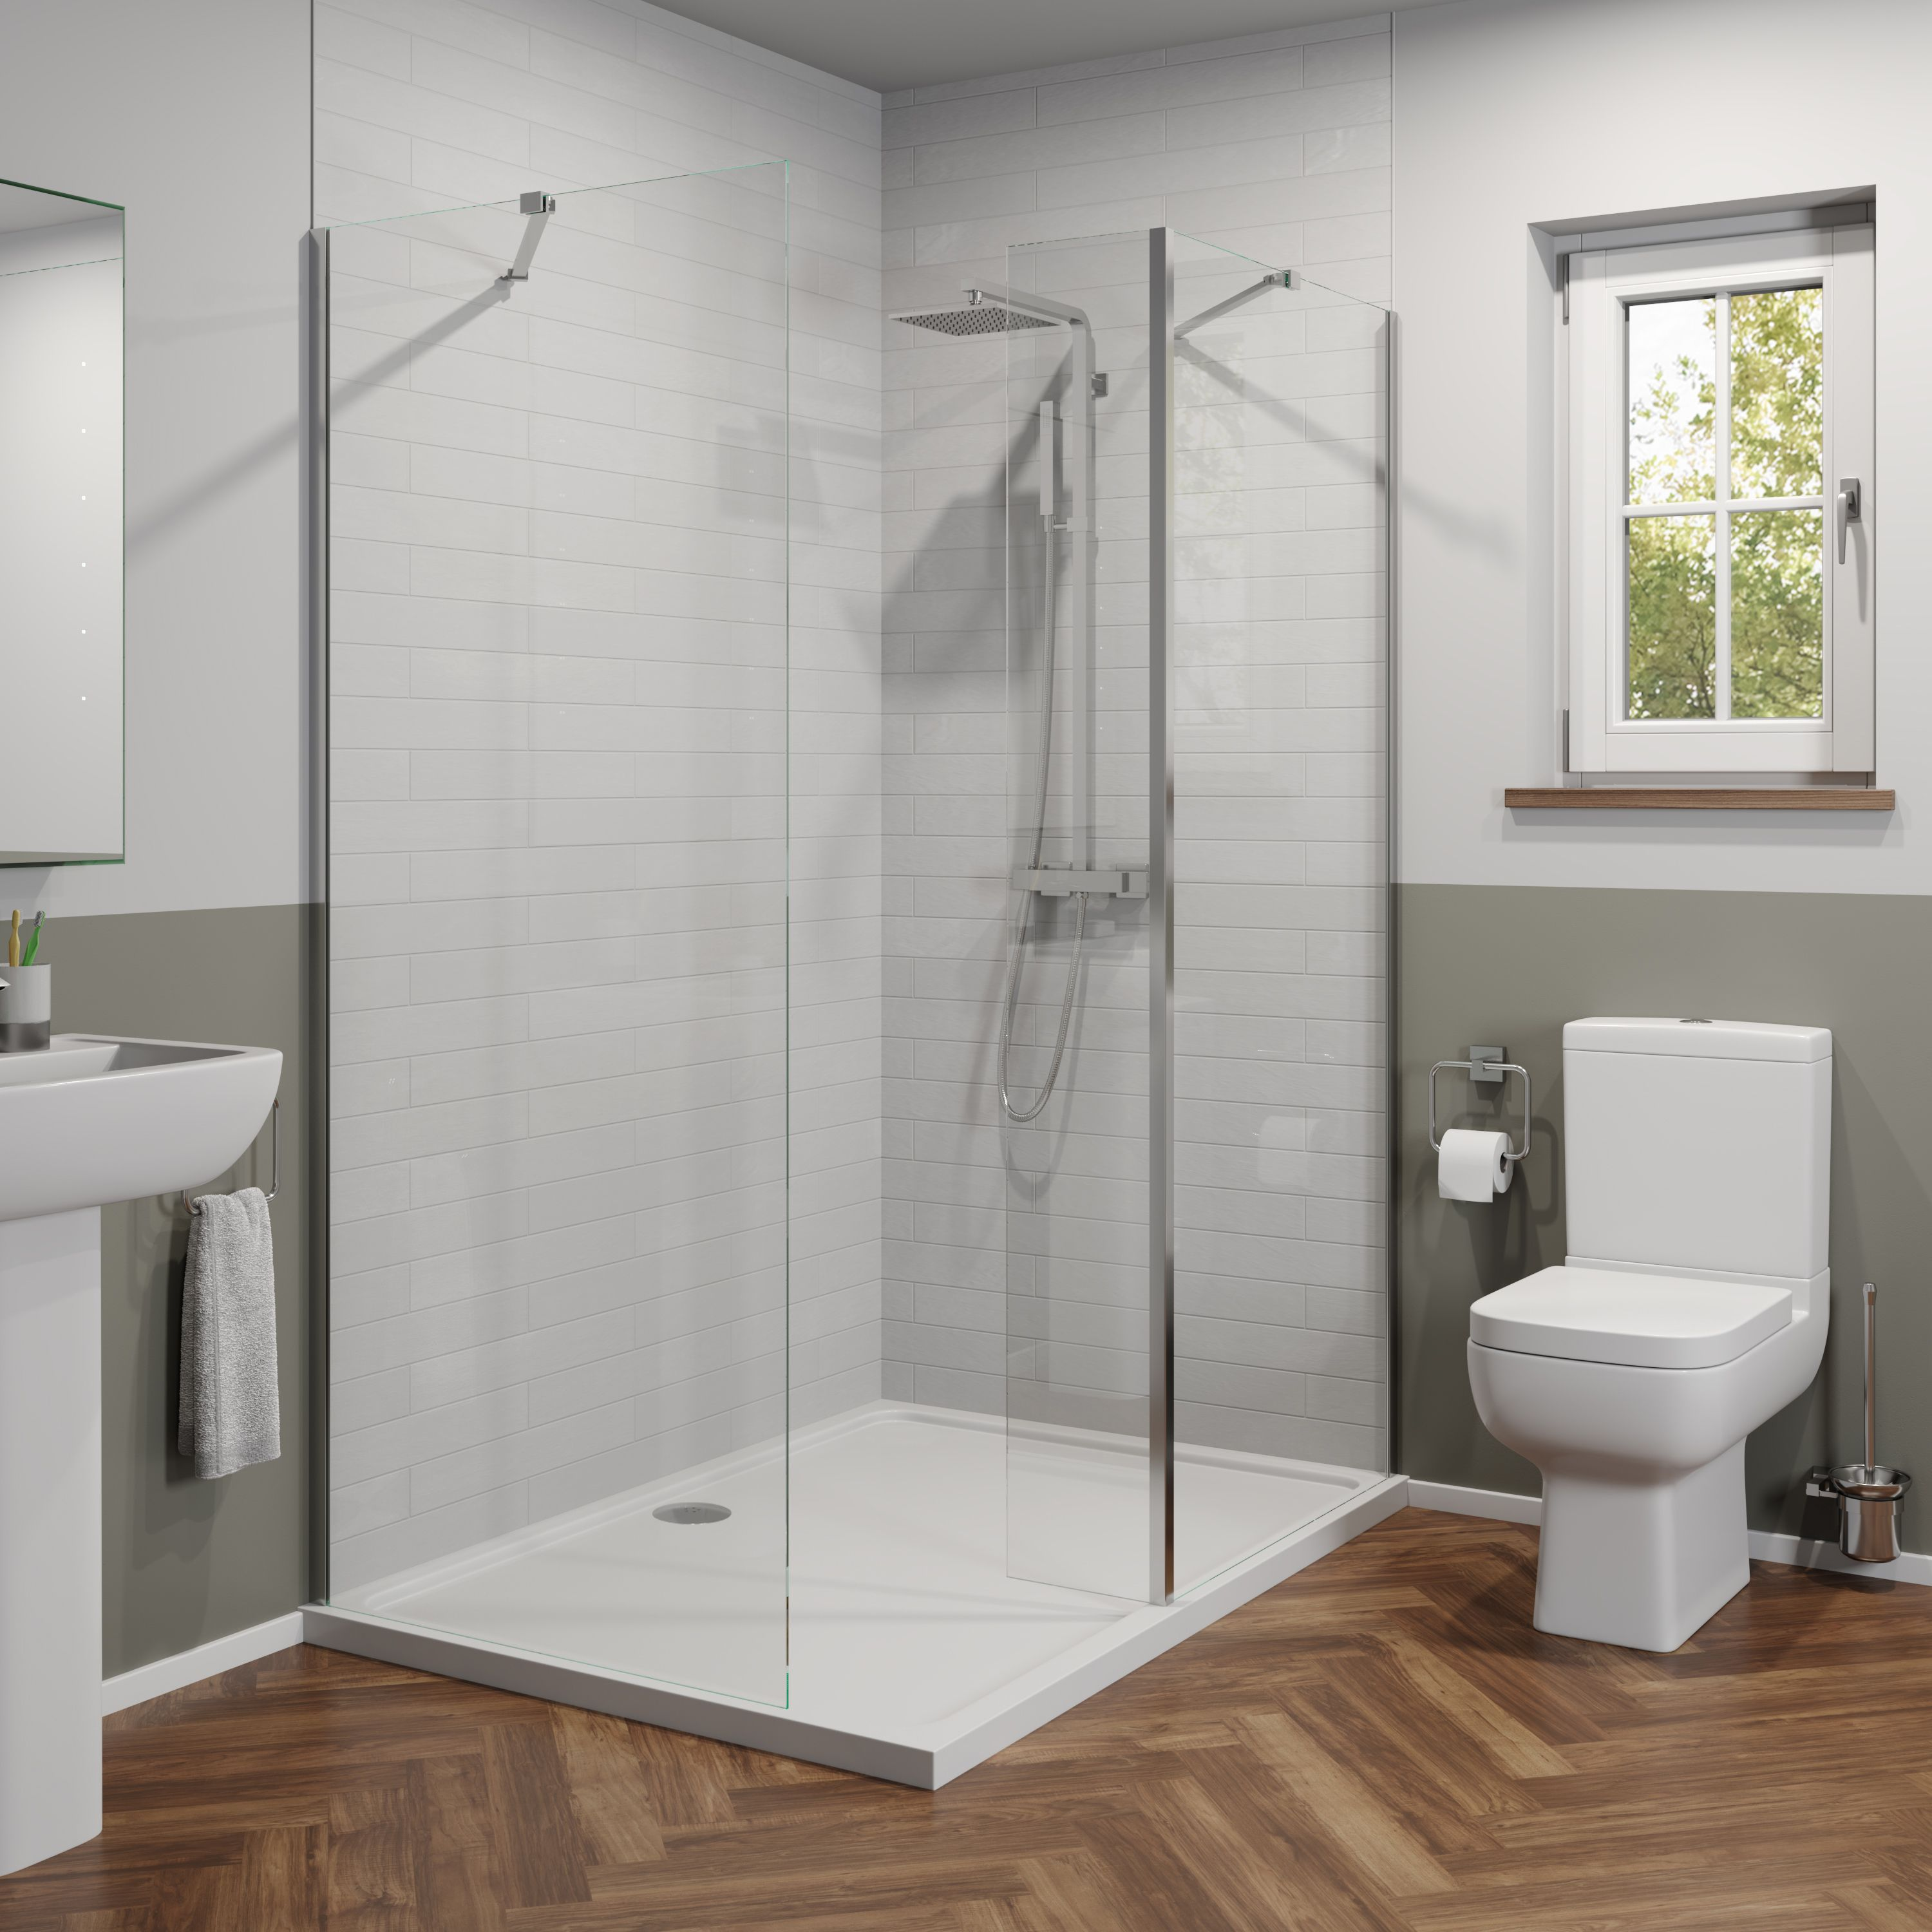 Luxura 1400x900mm Walk In Shower Enclosure 6mm Glass With Podium